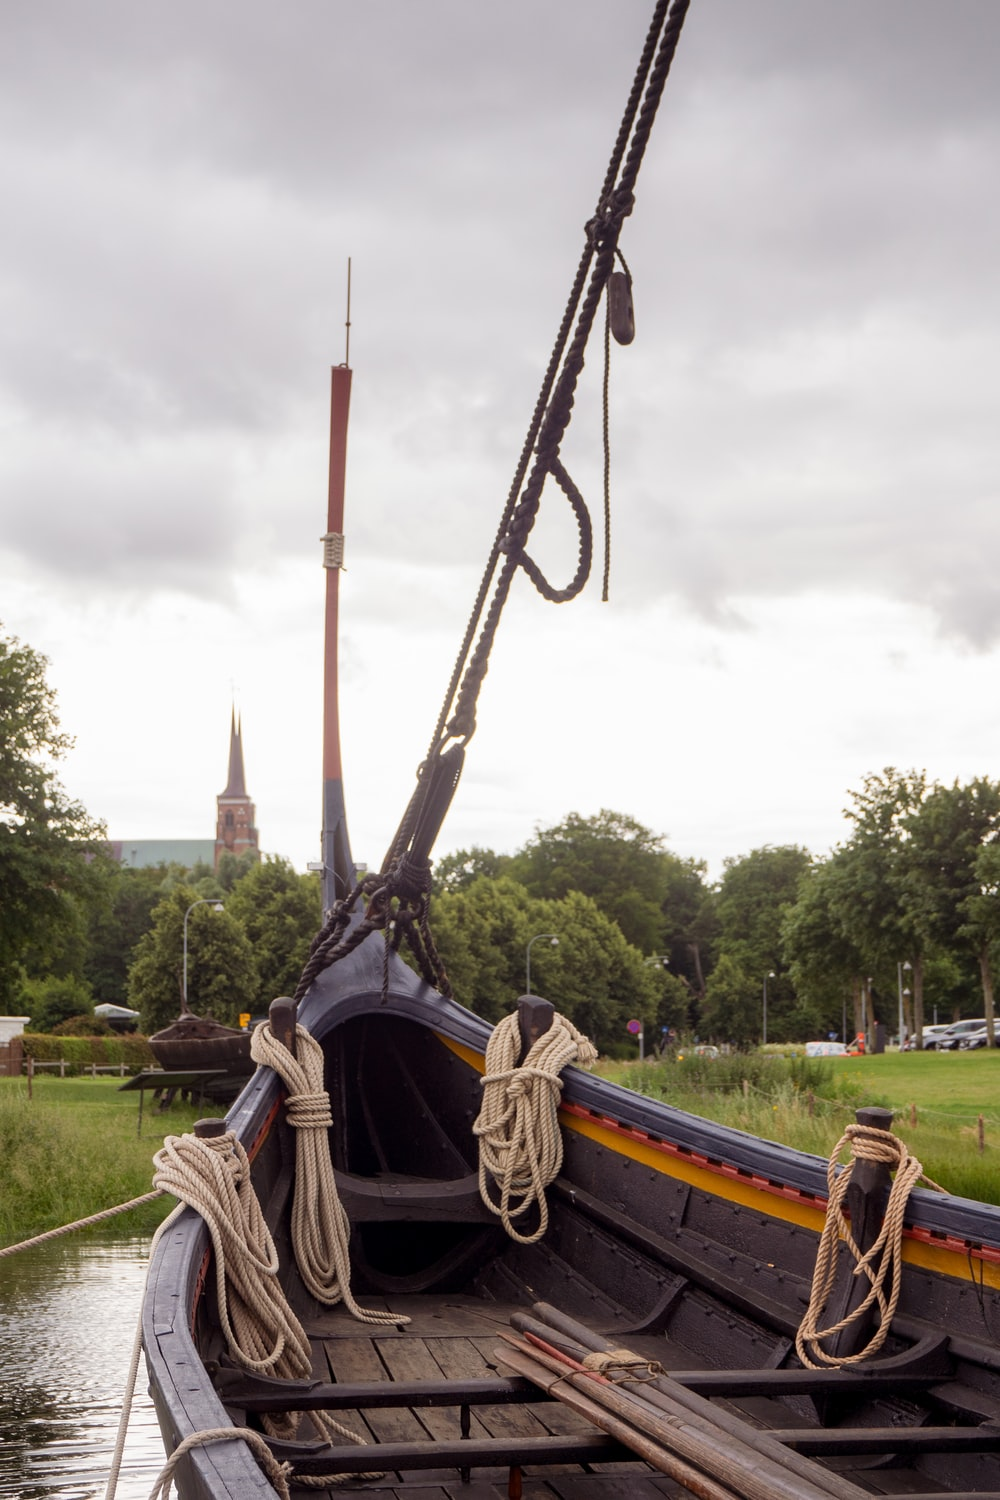 black and brown boat on green grass field during daytime